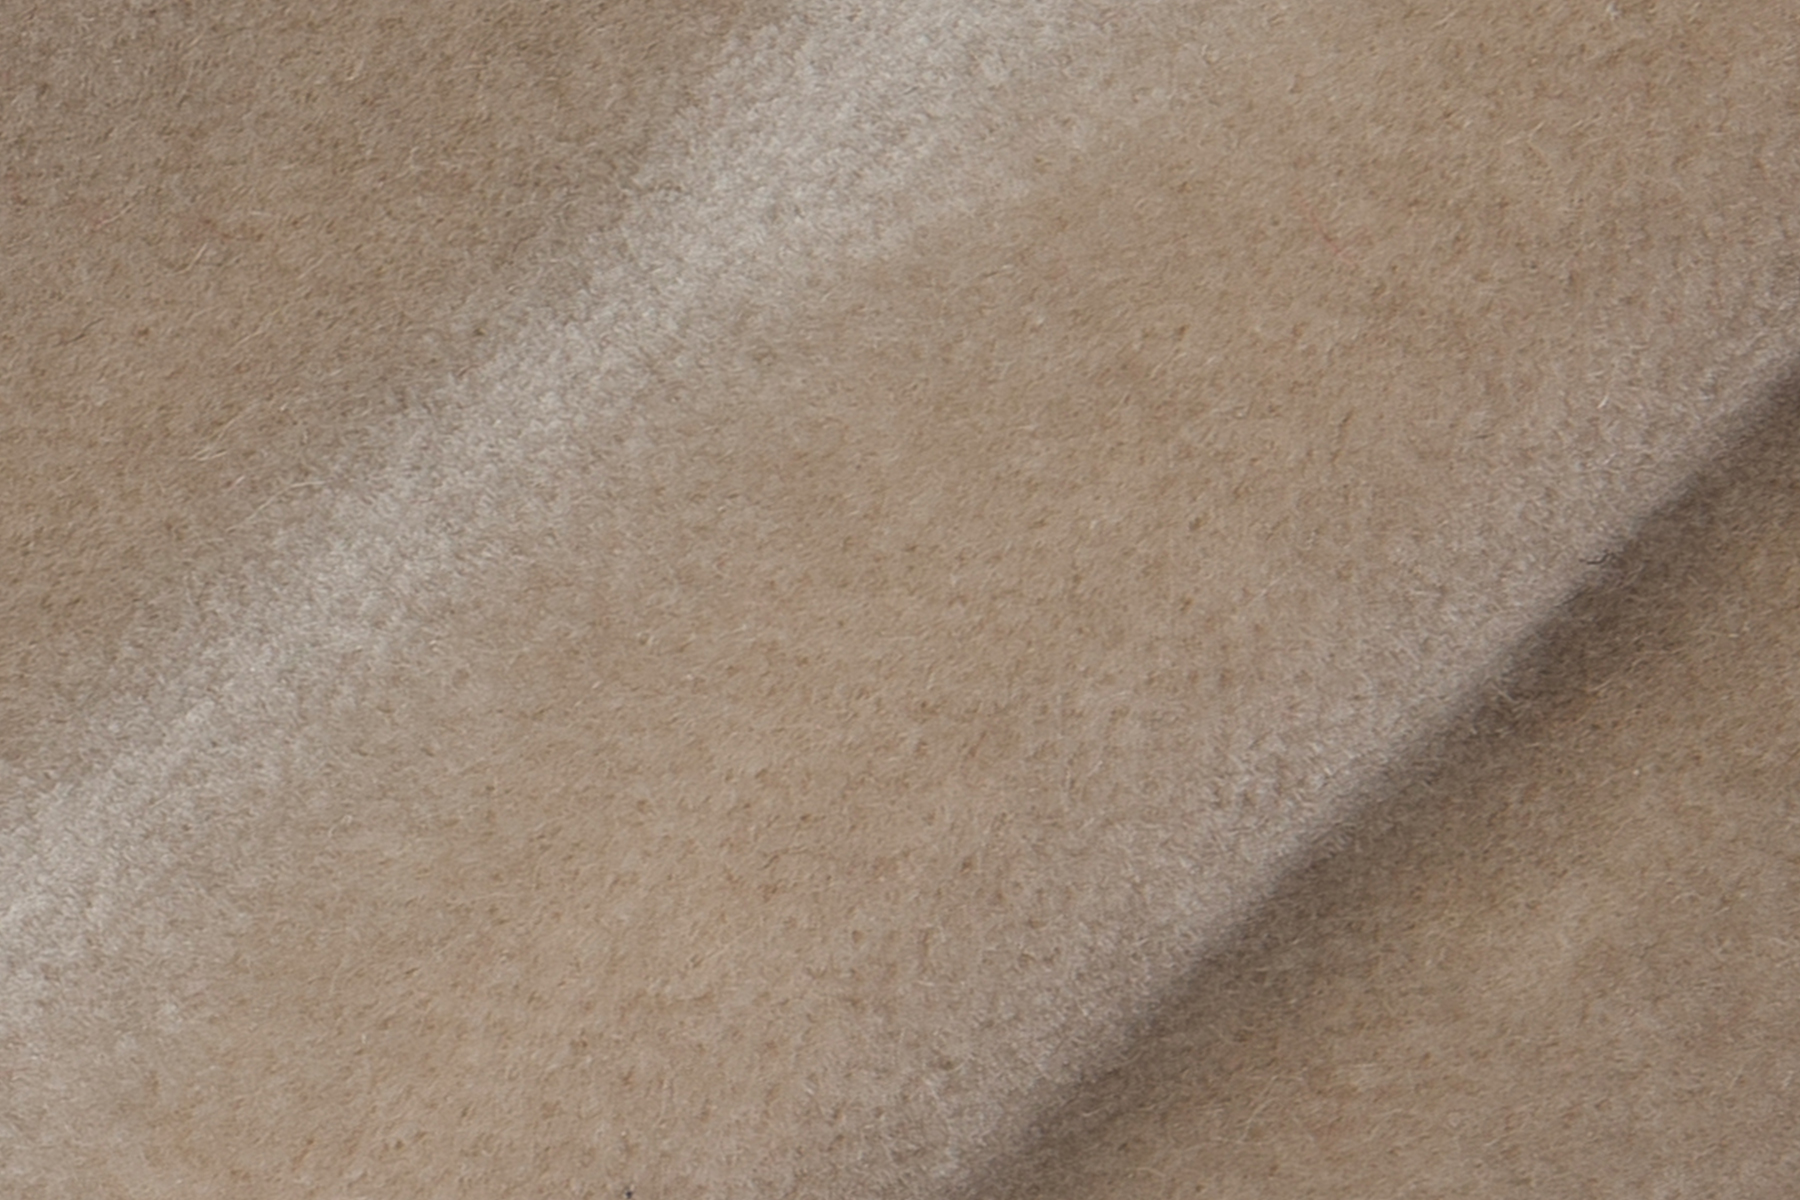 LUX VELVET 1104 GREIGE Fabric by KOKET